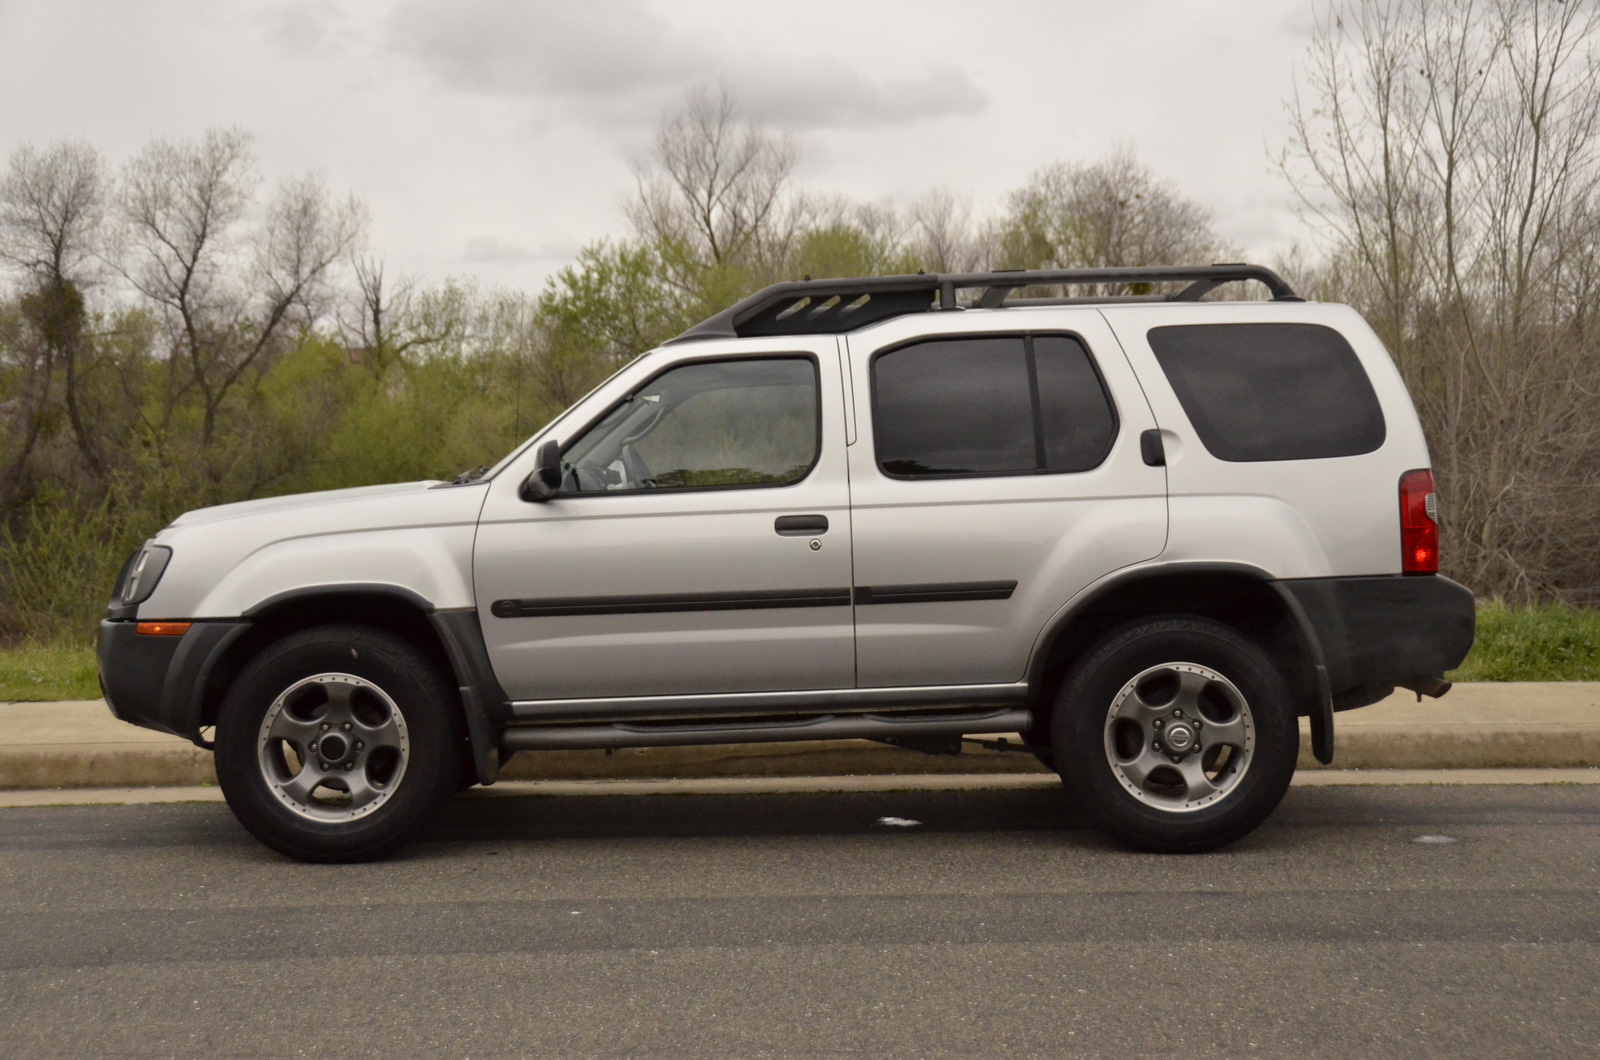 Nissan xterra questions does my vehicle have a lift kit can i does my vehicle have a lift kit can i make it taller with just tires vanachro Images